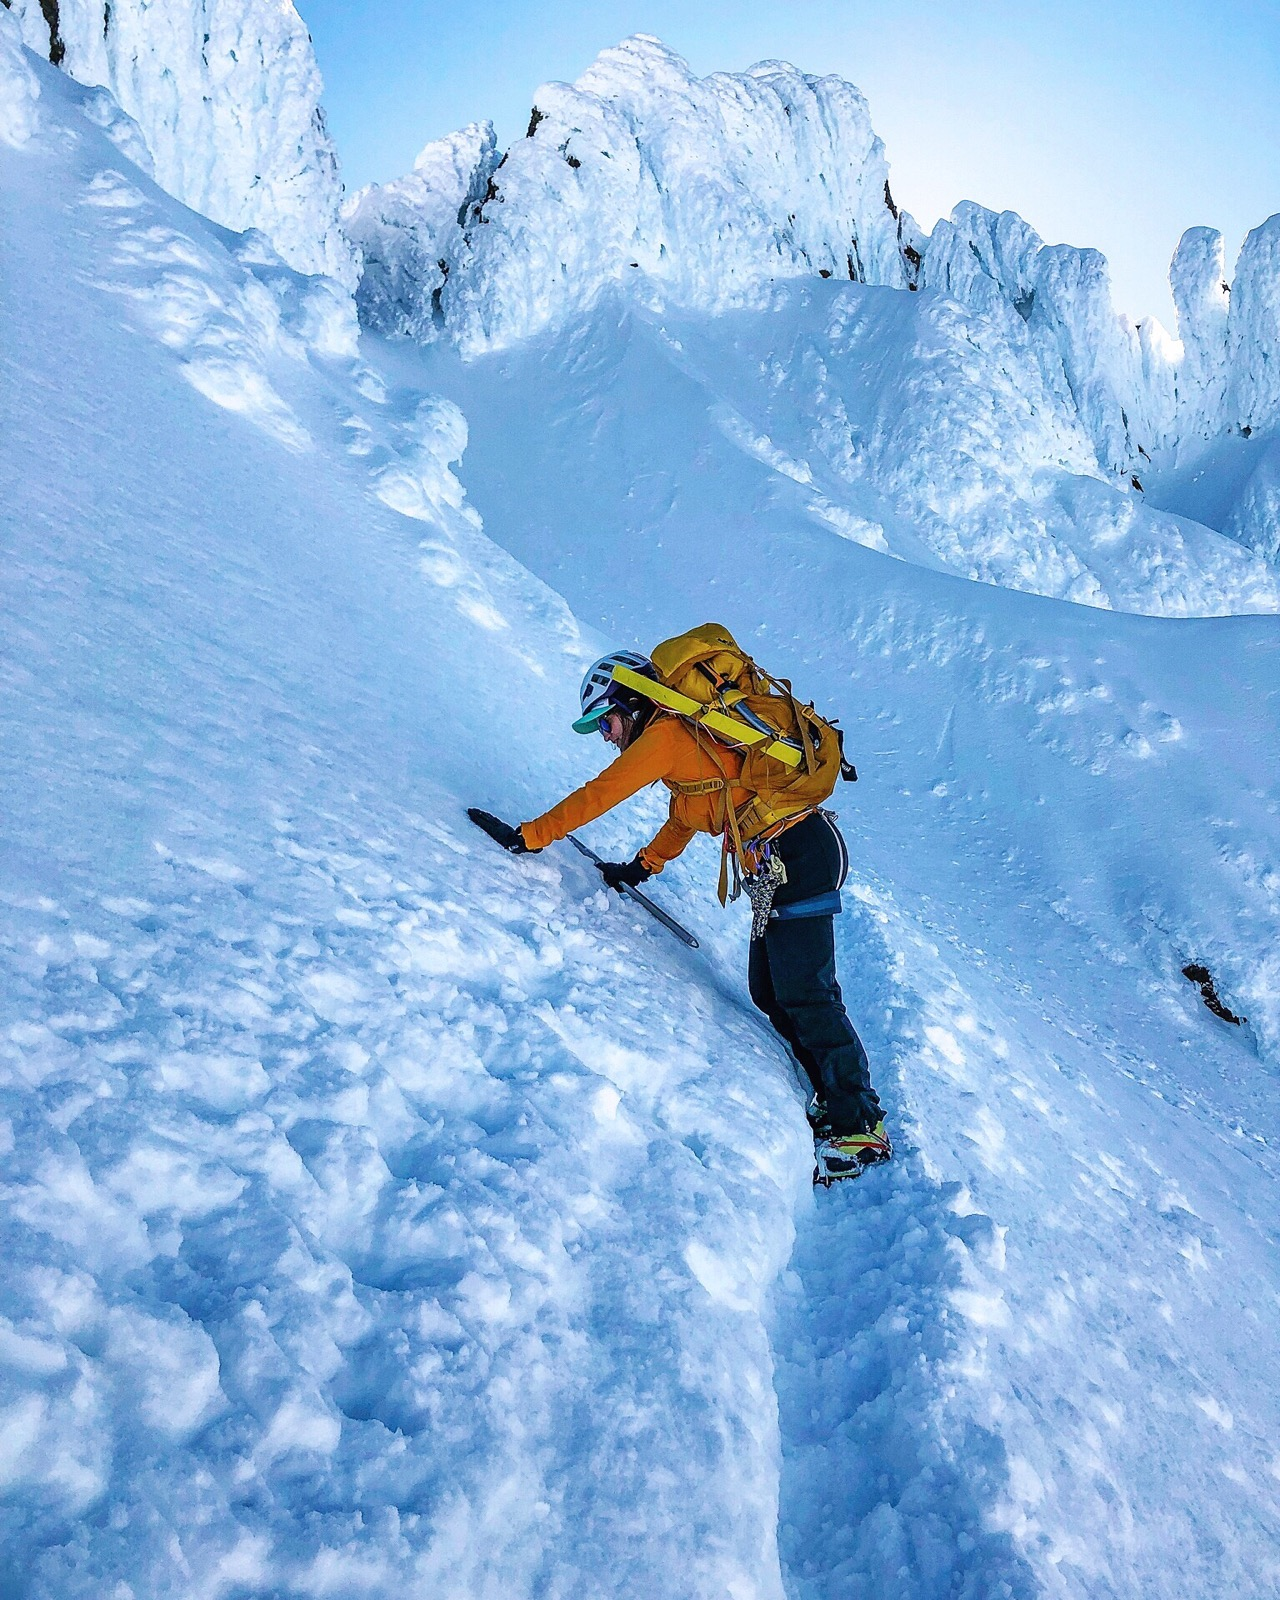 NSM member Kelsey Graner working her way across a steep snow slope to get to the summit of Mount Hood